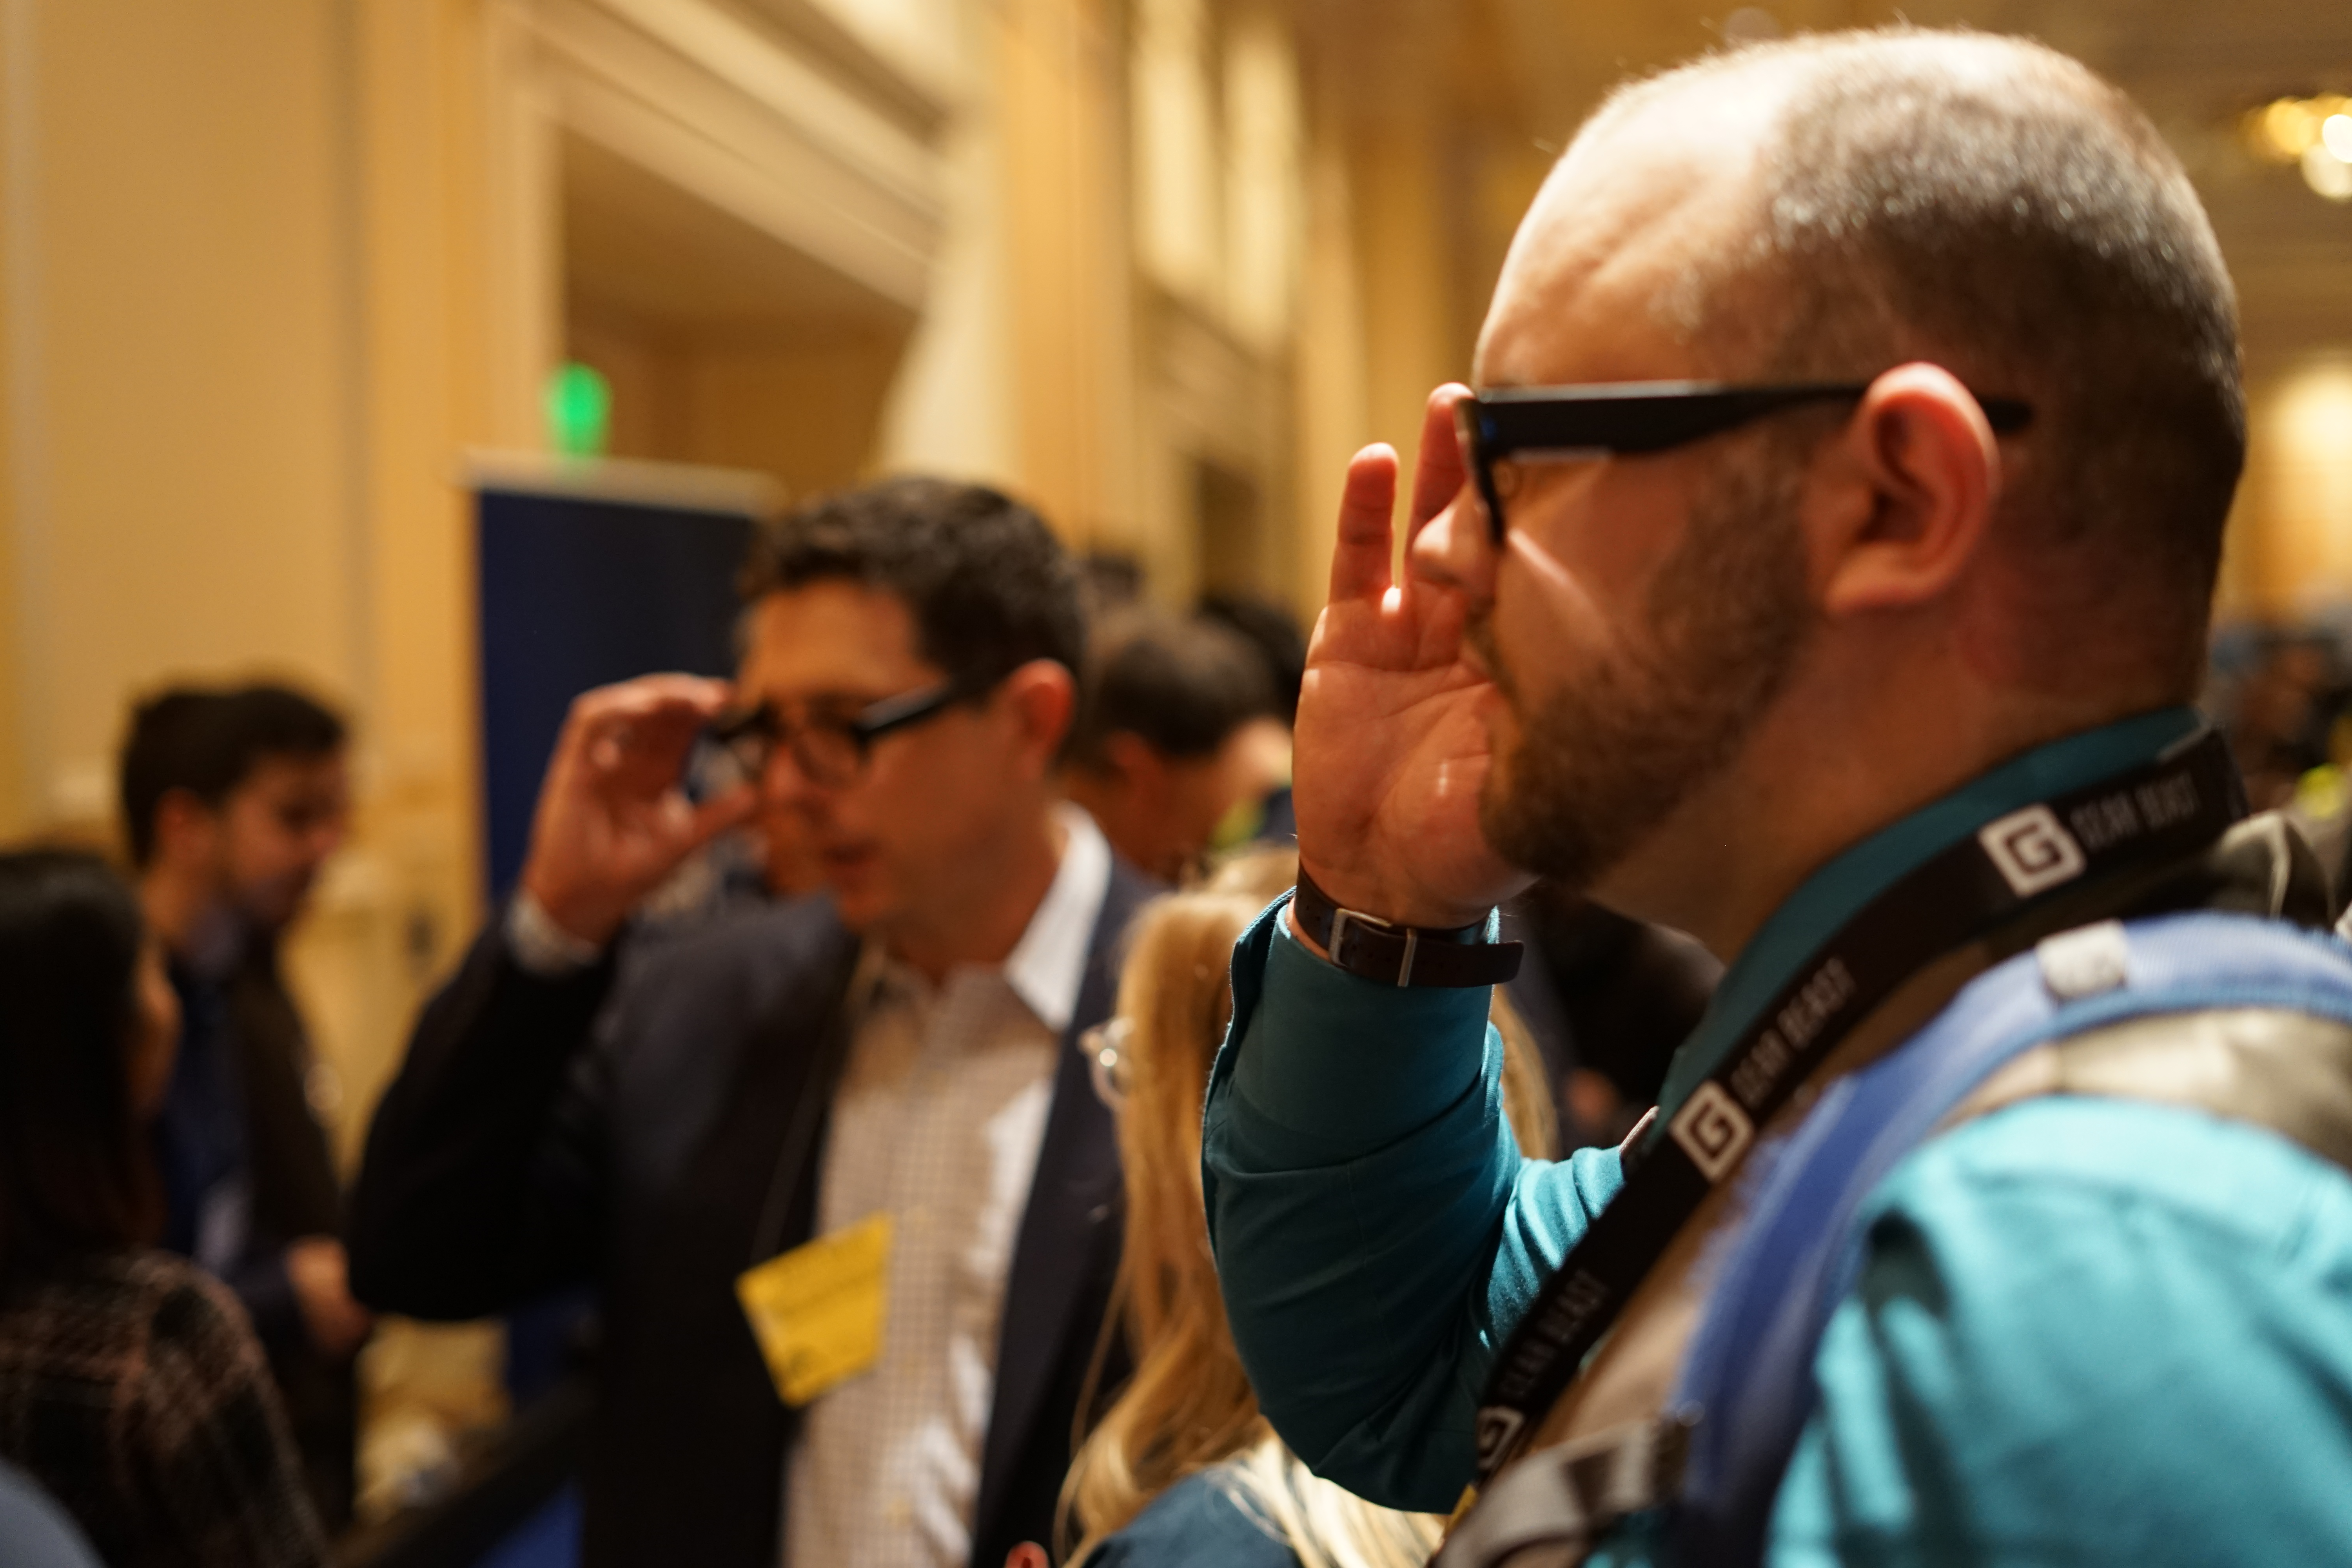 Pepcom showgoers try Focals by North